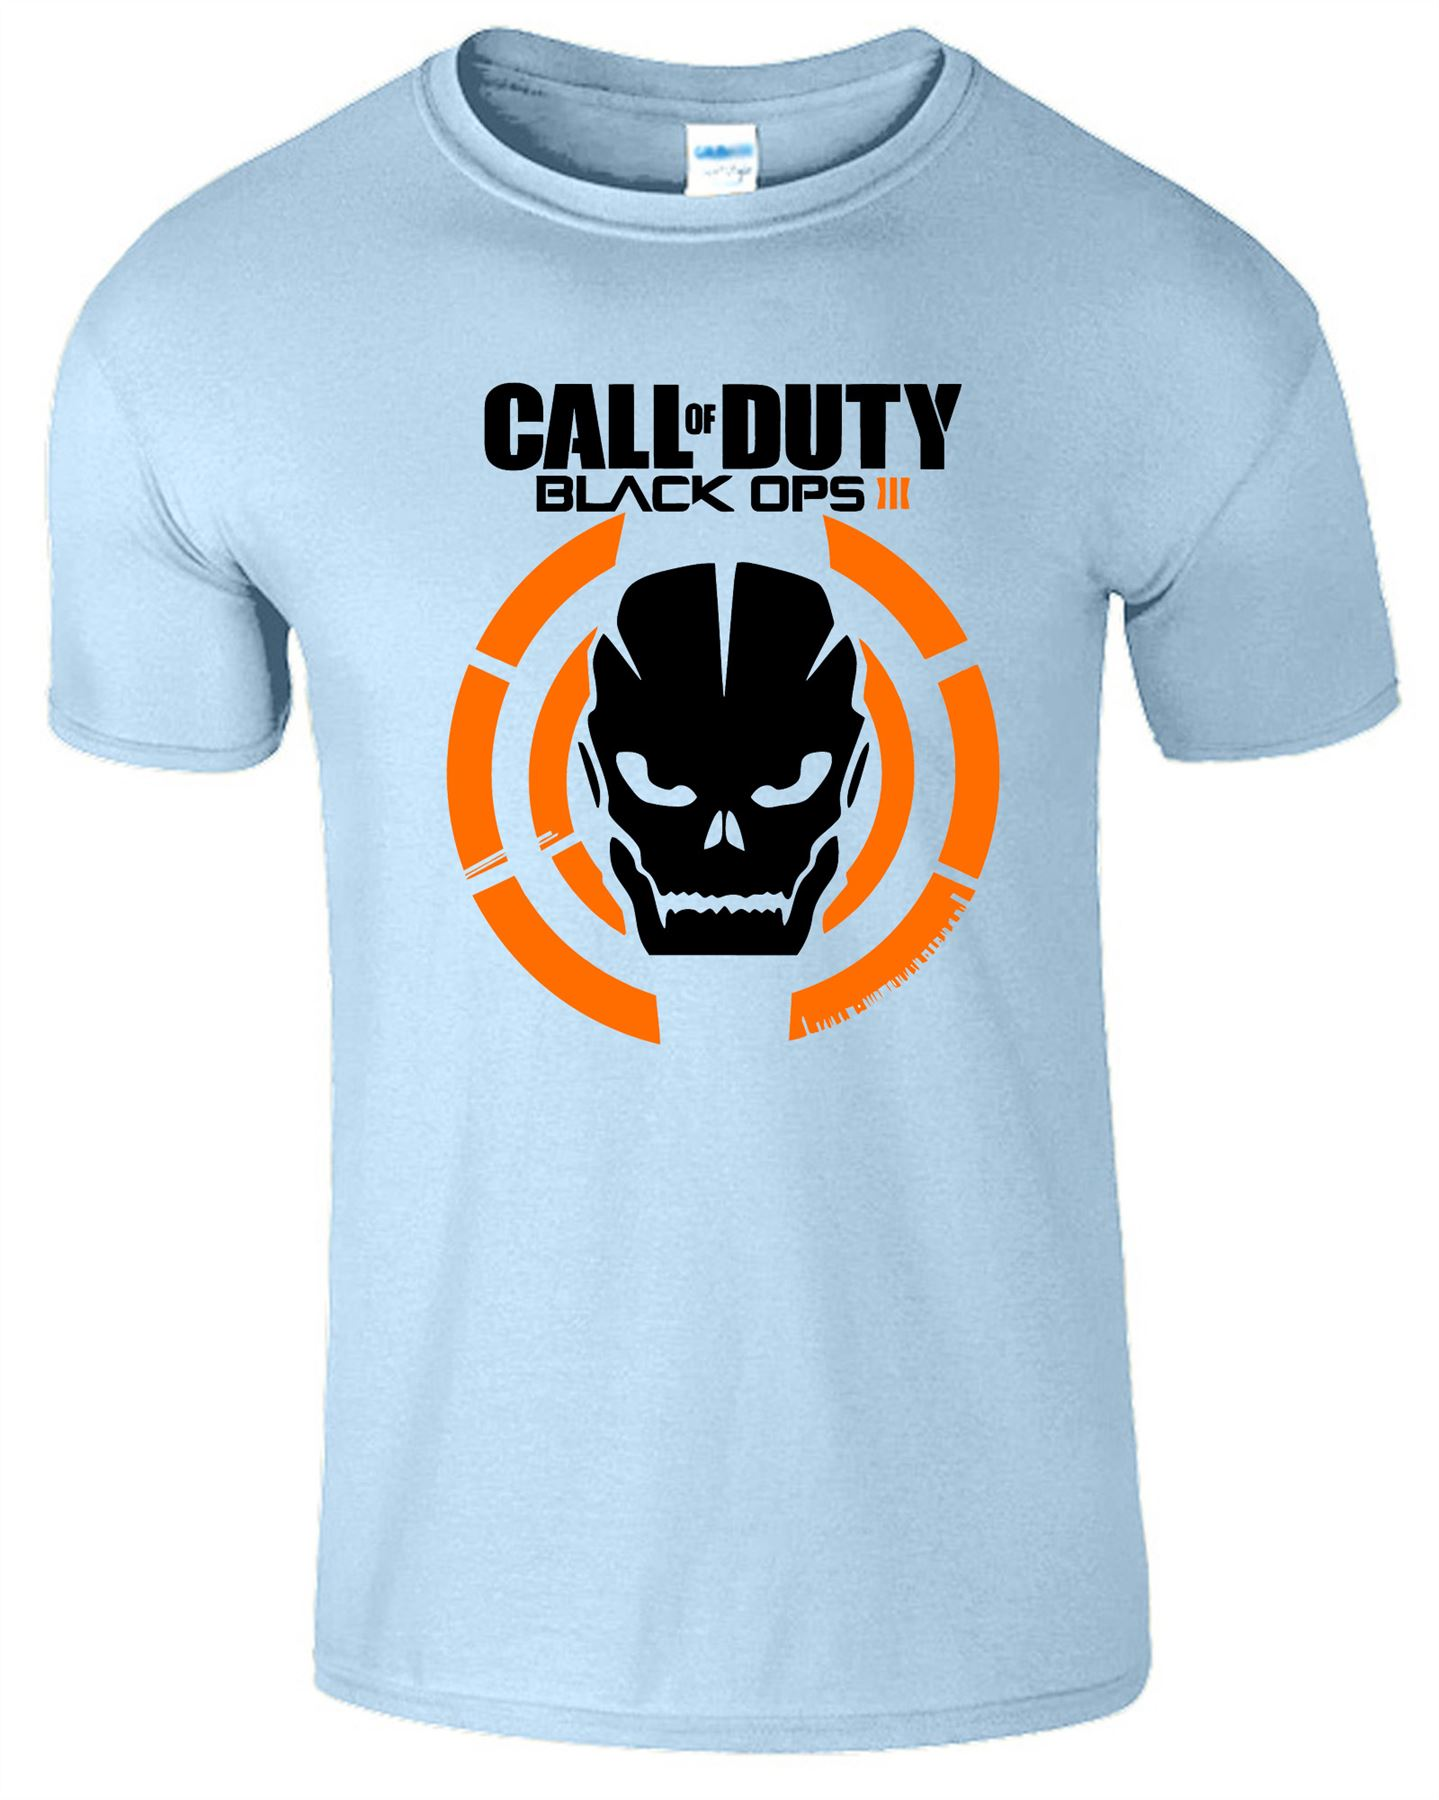 Duty-Black-Ops-Xbox-PS3-PS4-Game-Logo-With-Skull-Mens-Tshirt-Tee-Top-Gift miniatuur 5